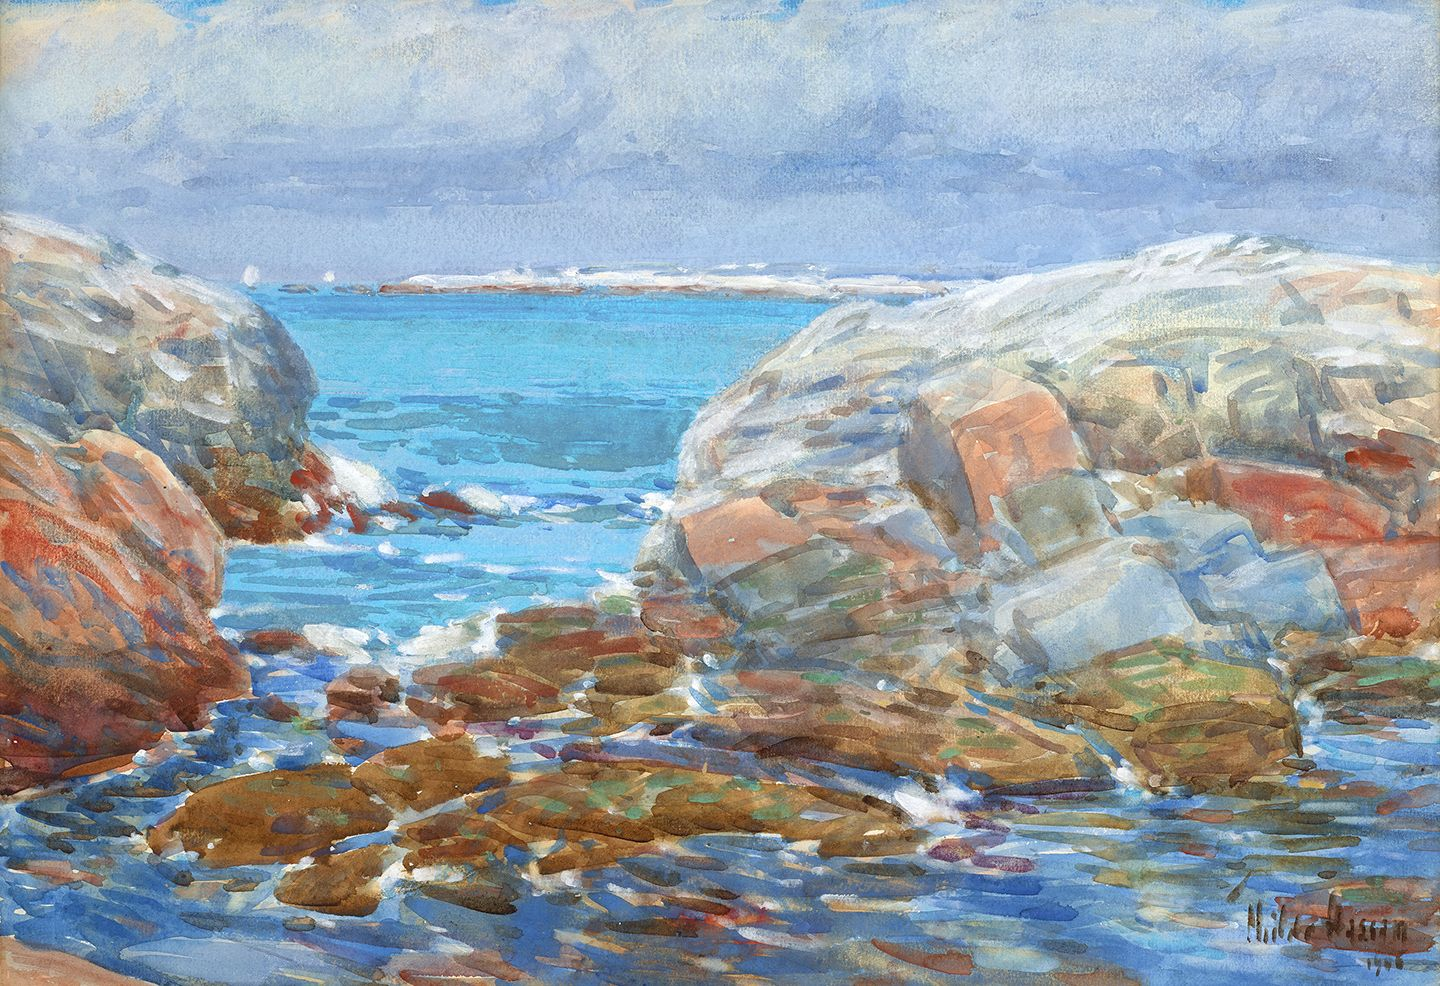 Frederick Childe Hassam (1859-1935), Isles of Shoals, Duck Island, 1906